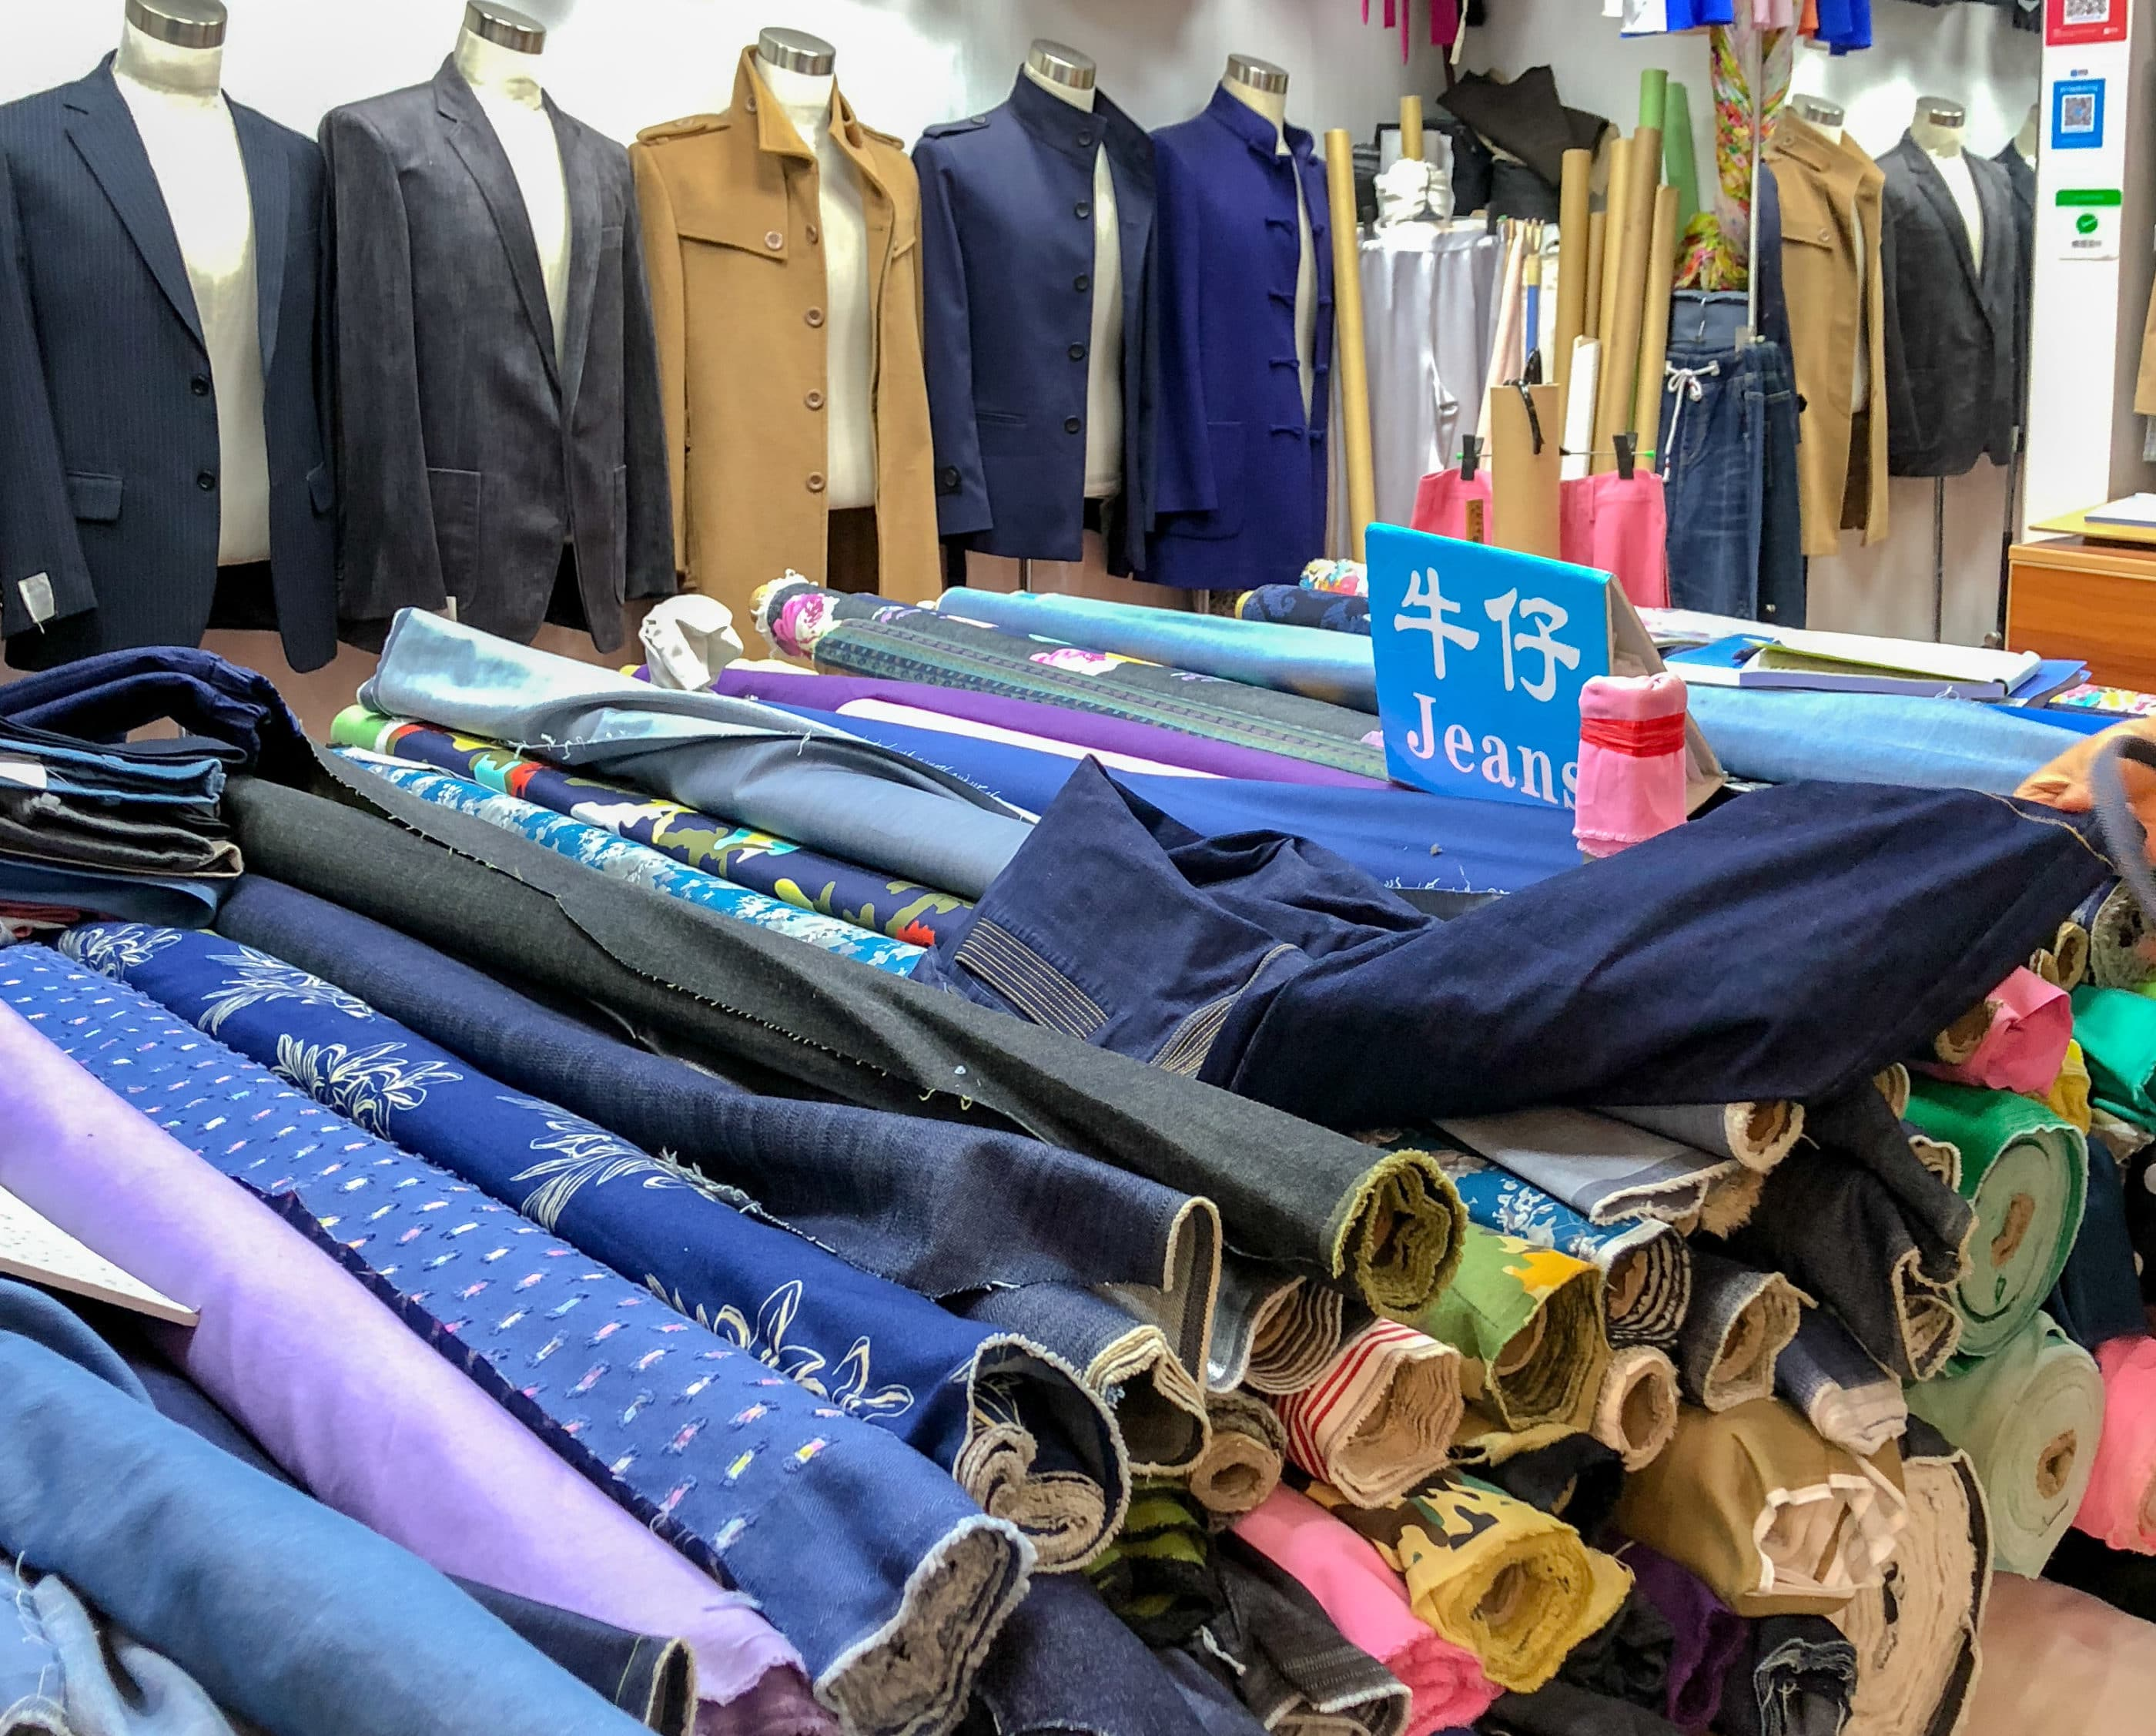 Things to do in Shanghai: Market shopping at South Bund Fabric Market